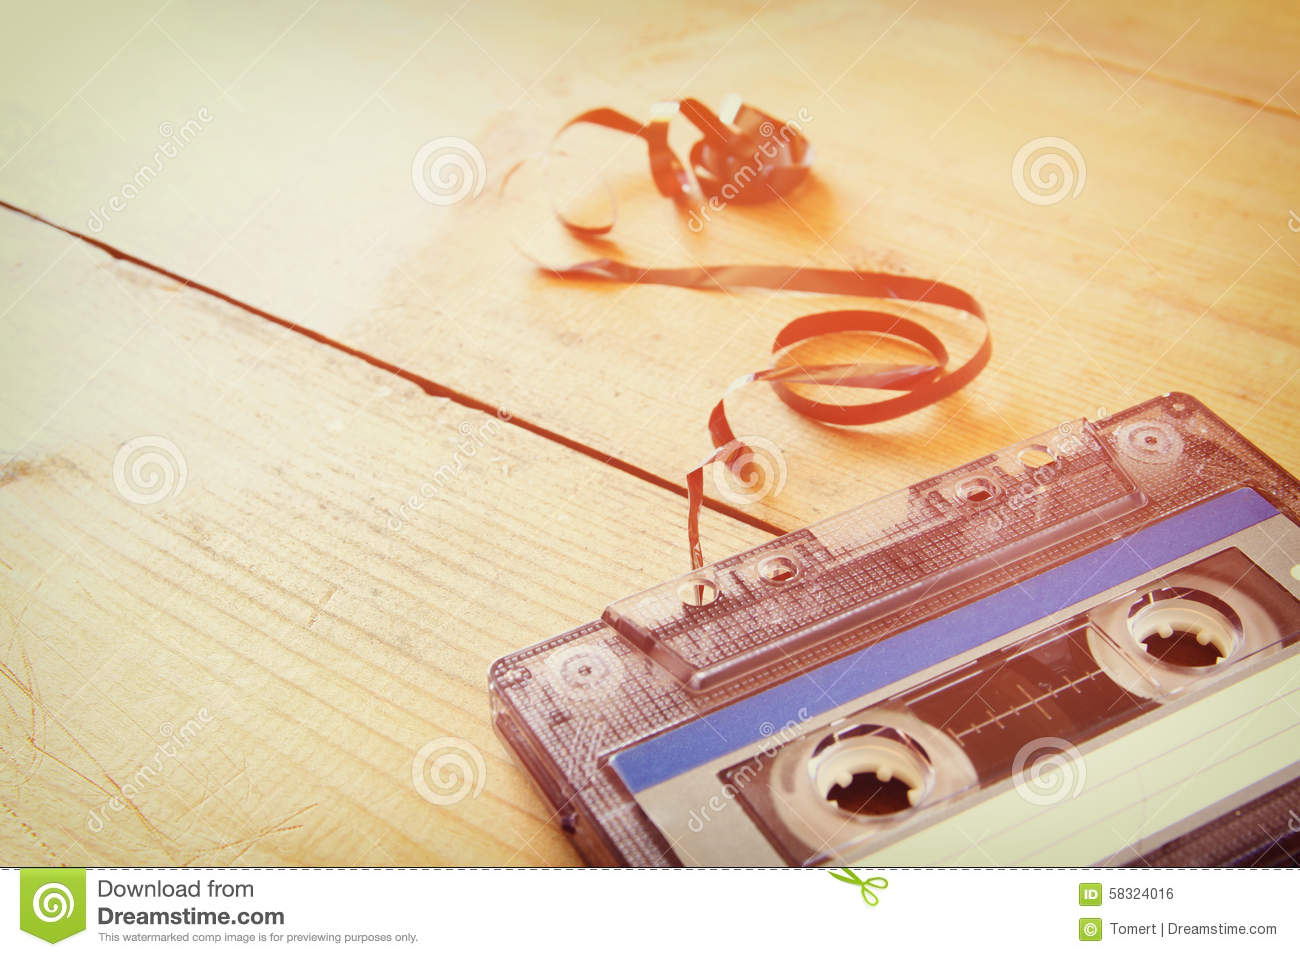 Cassette Tape Over Wooden Table With Tangled Ribbon Top View Retro Filter